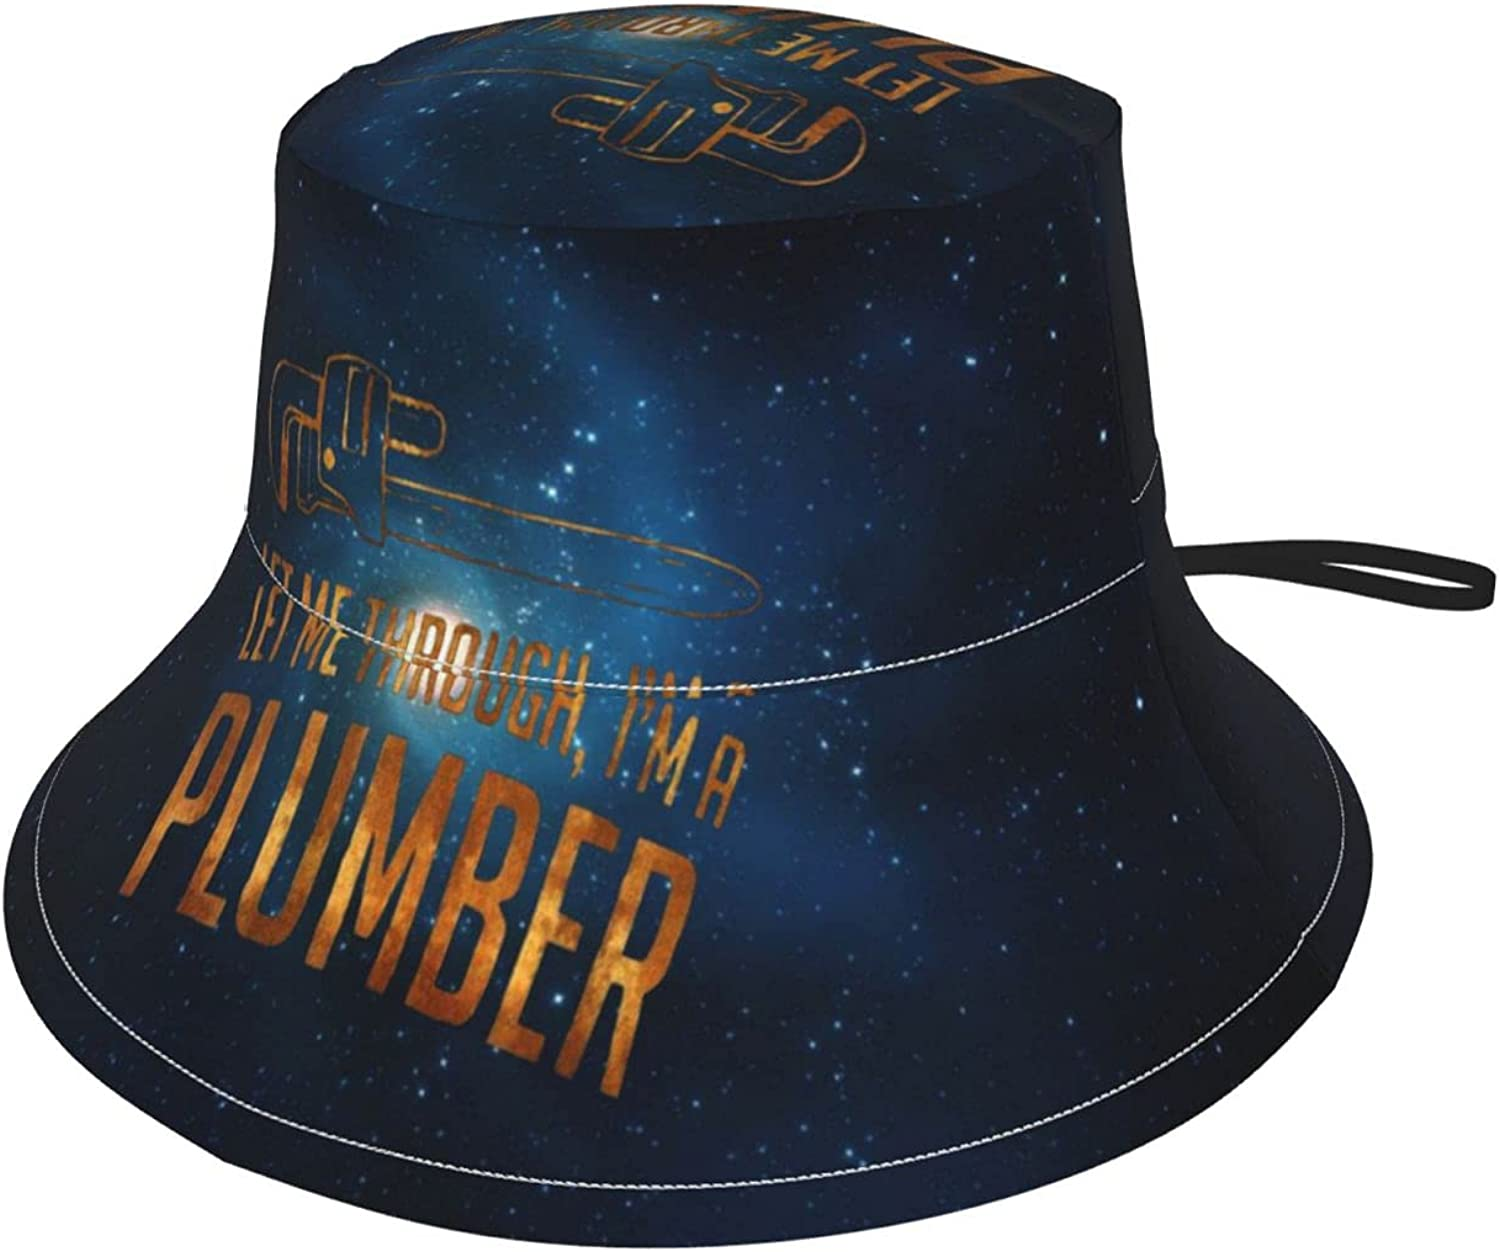 Let Me Through I'm A Plumber Kids Sun Hat Bucket Hat Upf50+ Breathable Fishmen Hat Sun Cap for Boys and Girls